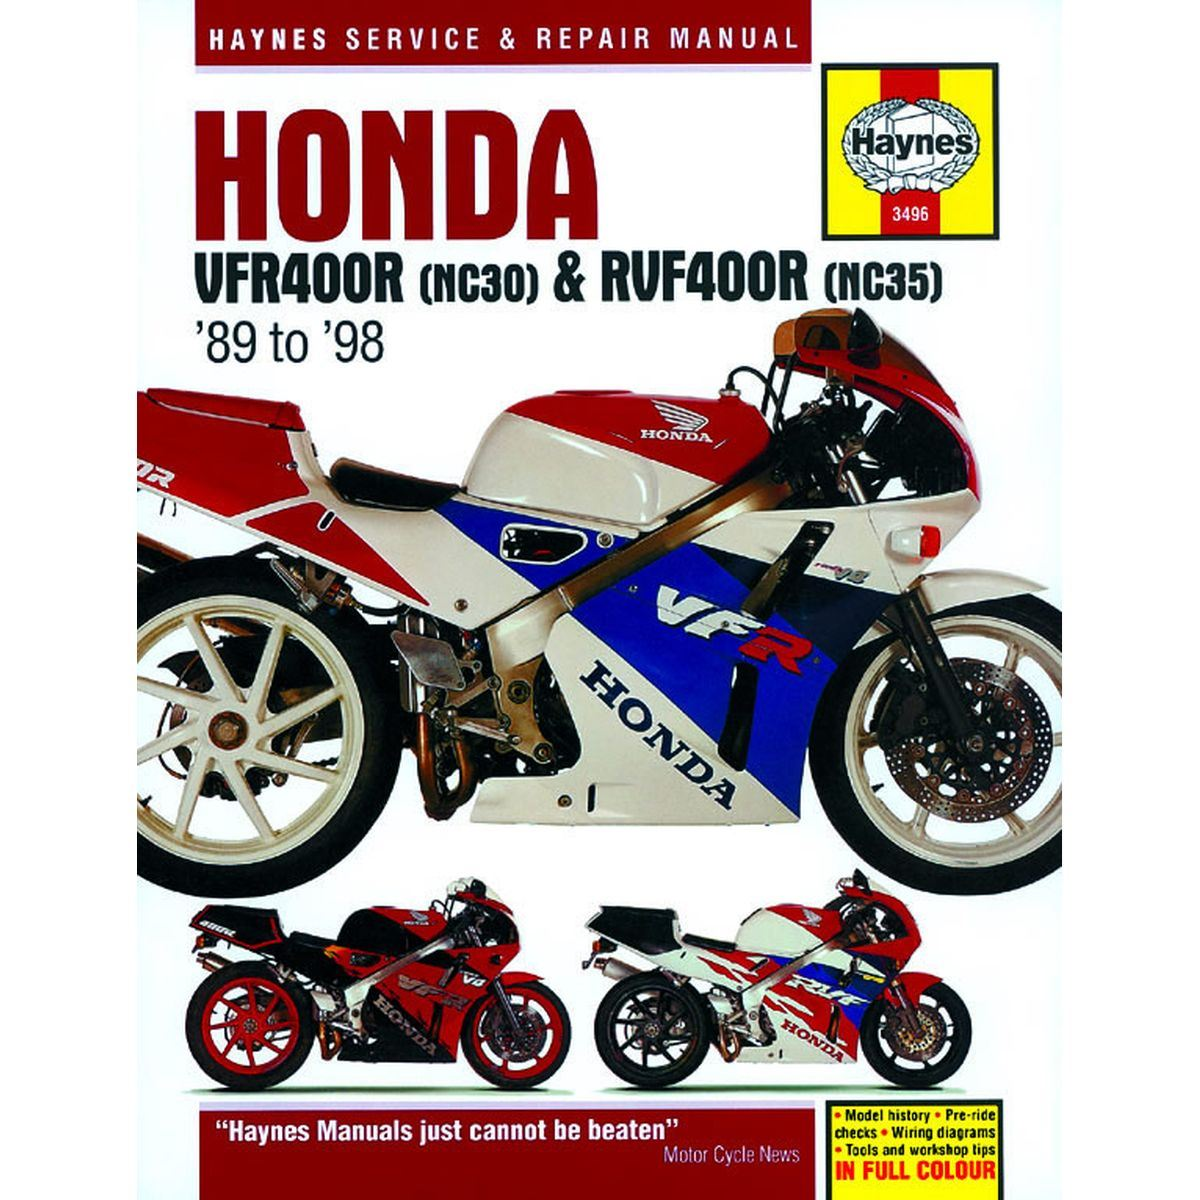 Manual Haynes For 1989 Honda Vfr 400 R3k Nc30 Ebay 89 Wiring Diagram Image Is Loading